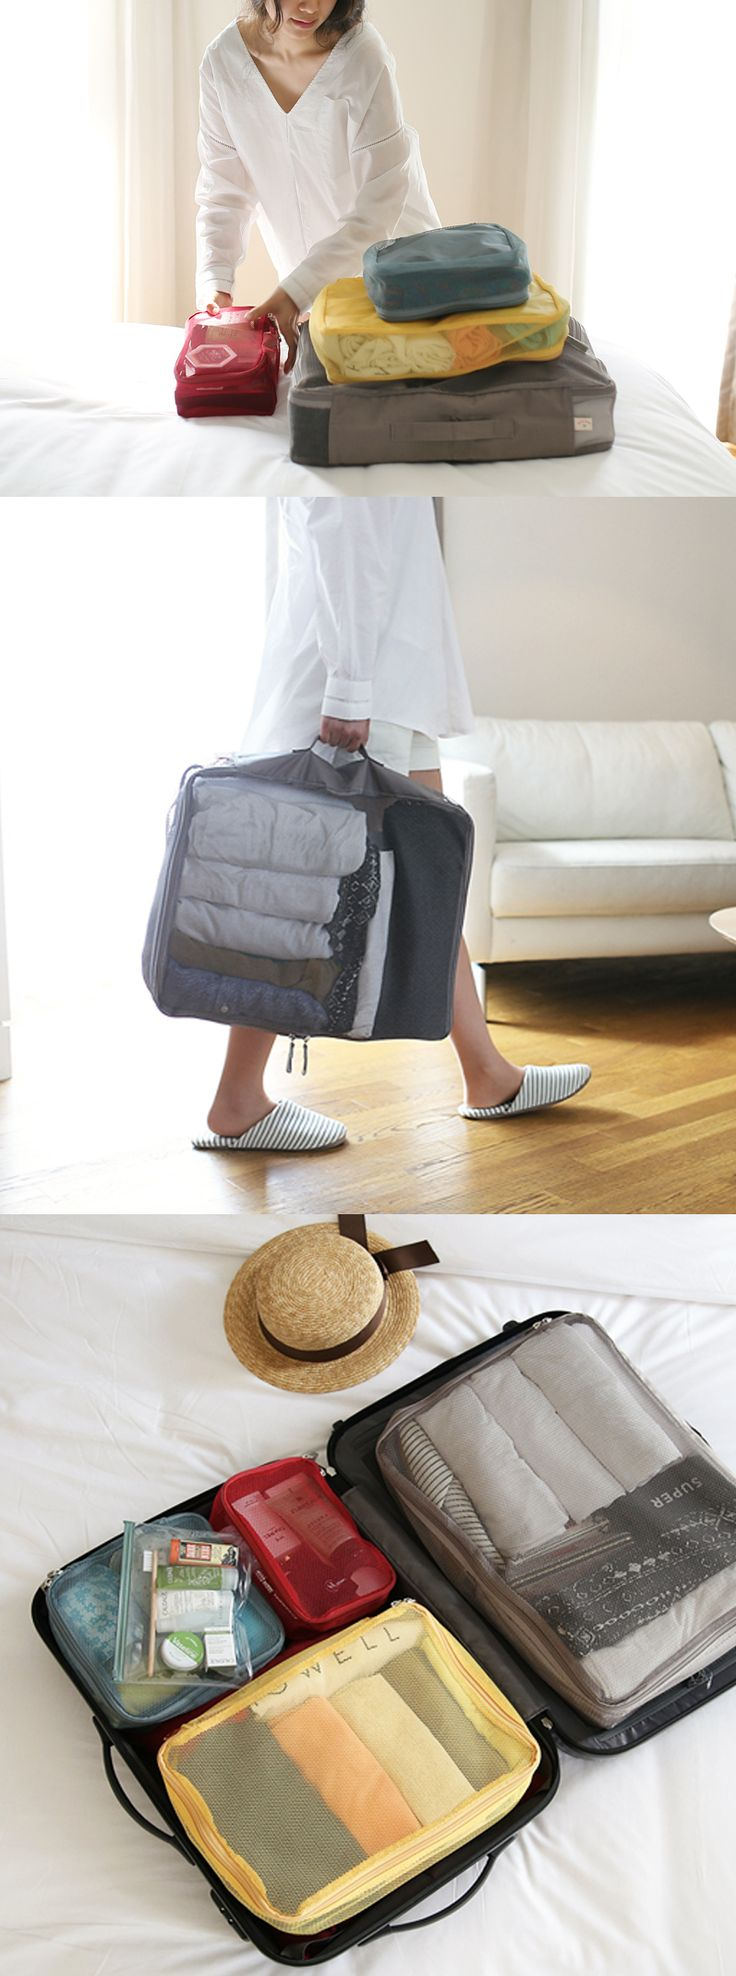 The Luggage Mesh Bag Set is an absolute necessity to bring with you on all your travels!